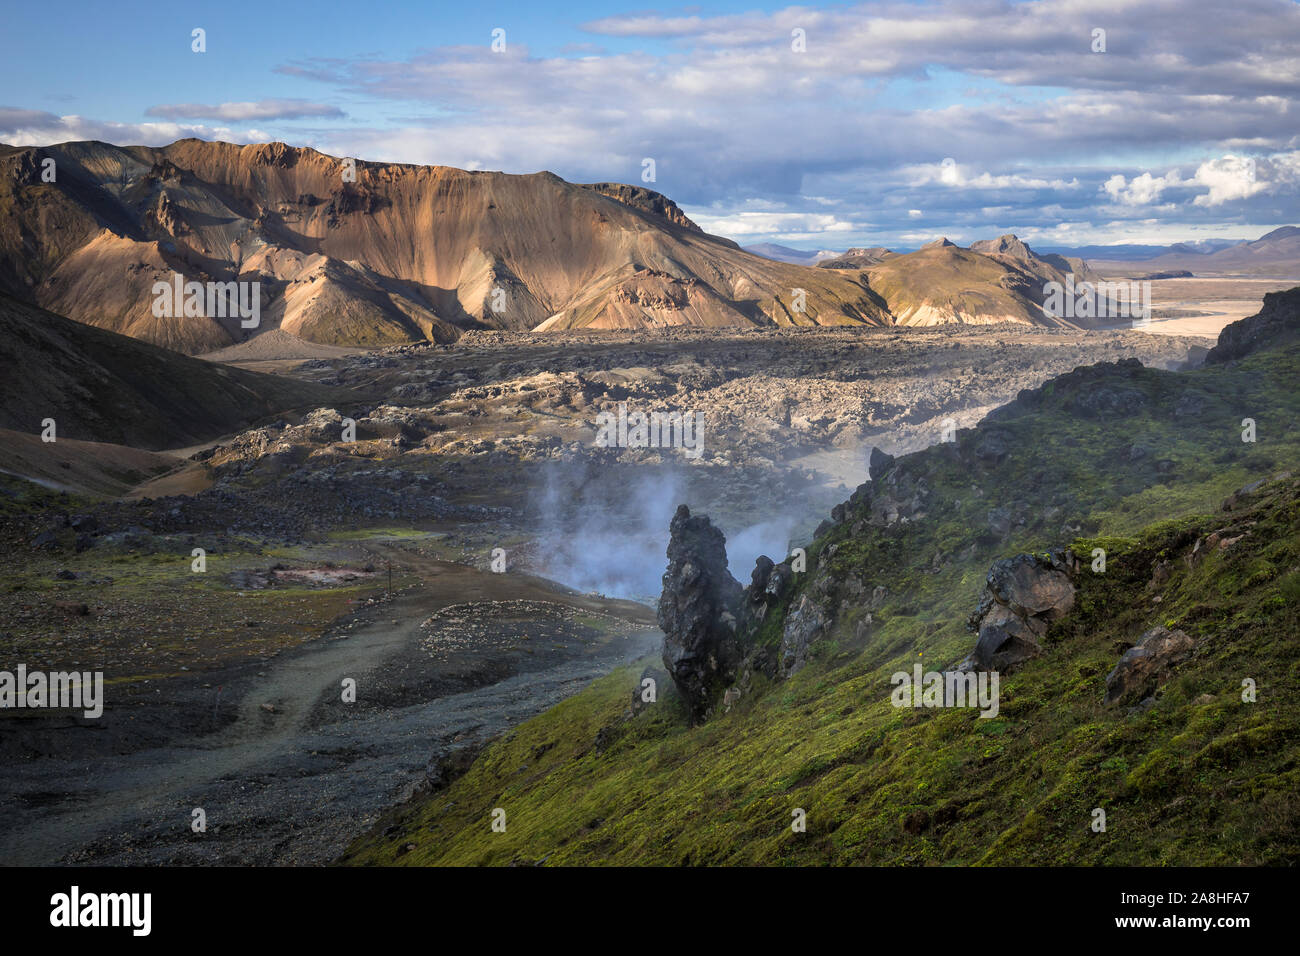 Smoke is rising out of the ground of this geothermal area in Iceland Stock Photo